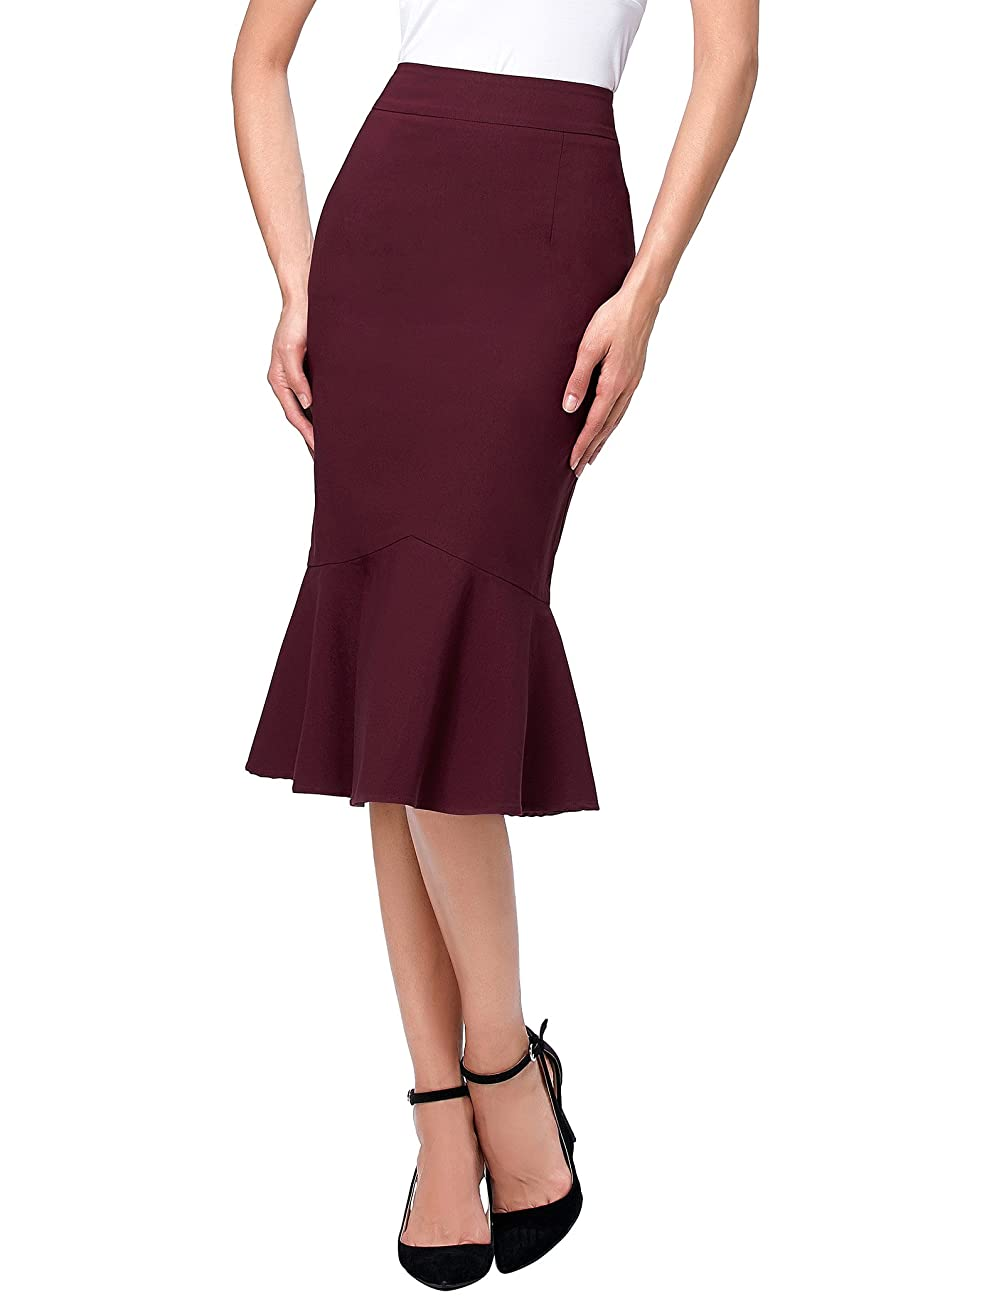 Kate Kasin Womens Wear to Work Stretchy Pencil Skirts 0